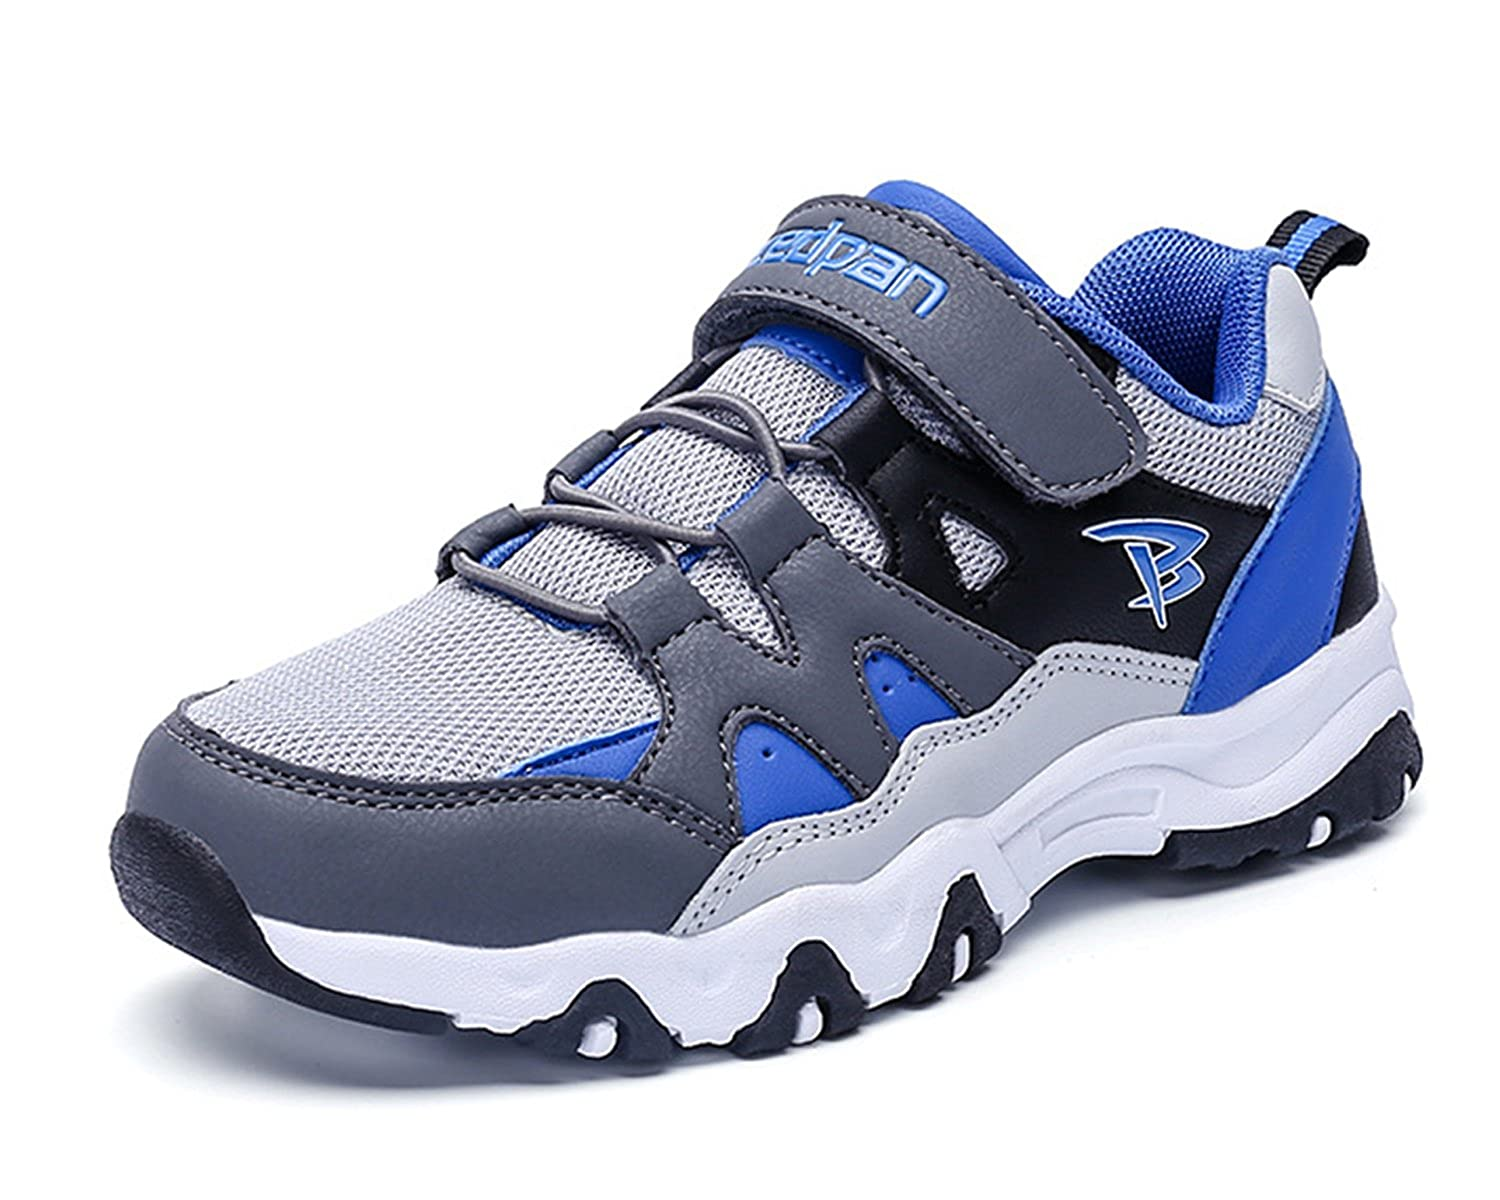 Jabasic Kids Hiking Shoes Outdoor Adventure Athletic Sneakers ST4391